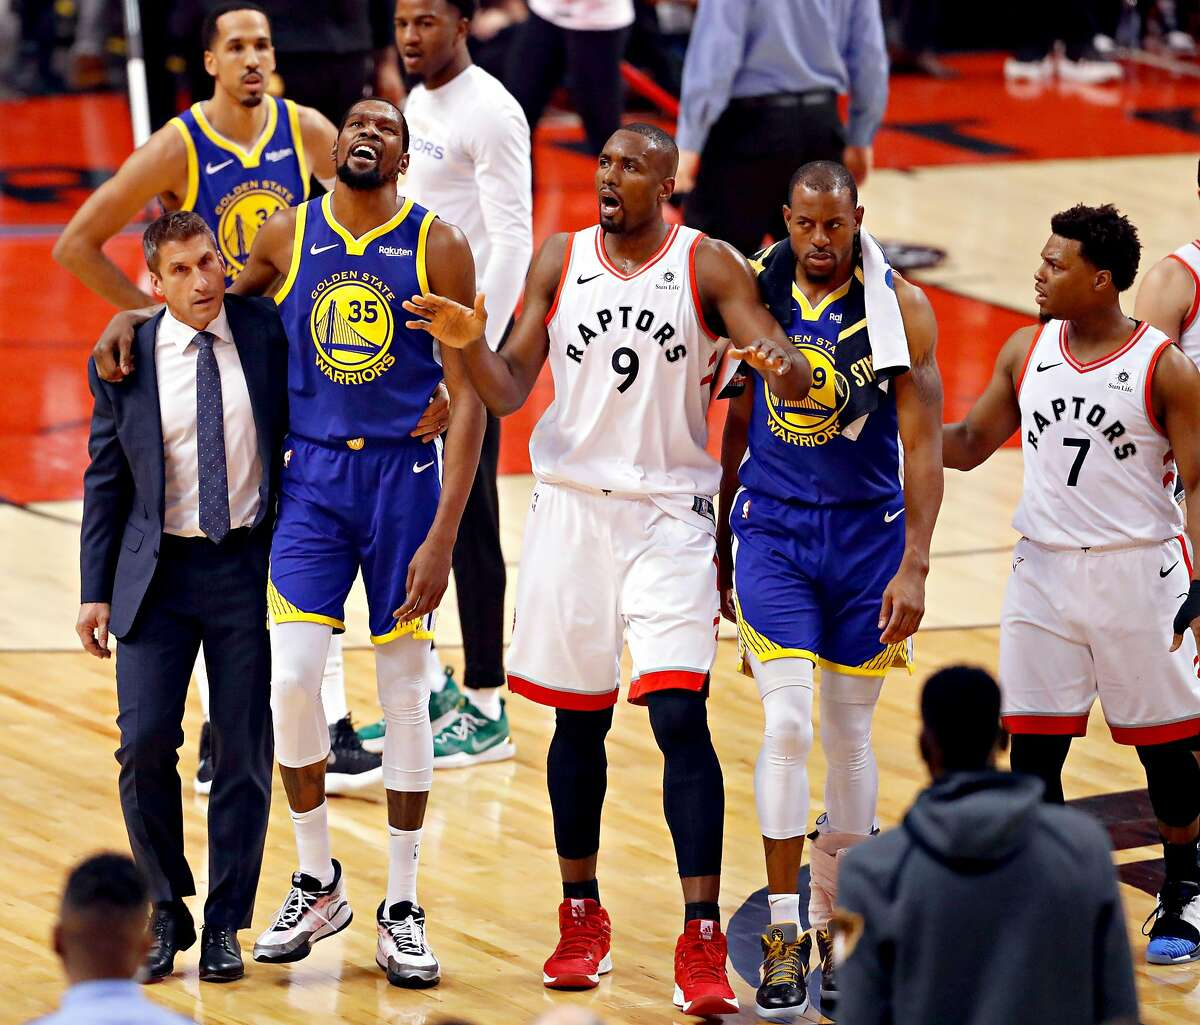 Golden State Warriors� Kevin Durant is helped off the court by the team�s director of sports medicine Rick Celebrini as Toronto Raptors� Serge Ibaka signals to the crowd in the first quarter during game 5 of the NBA Finals between the Golden State Warriors and the Toronto Raptors at Scotiabank Arena on Monday, June 10, 2019 in Toronto, Ontario, Canada.